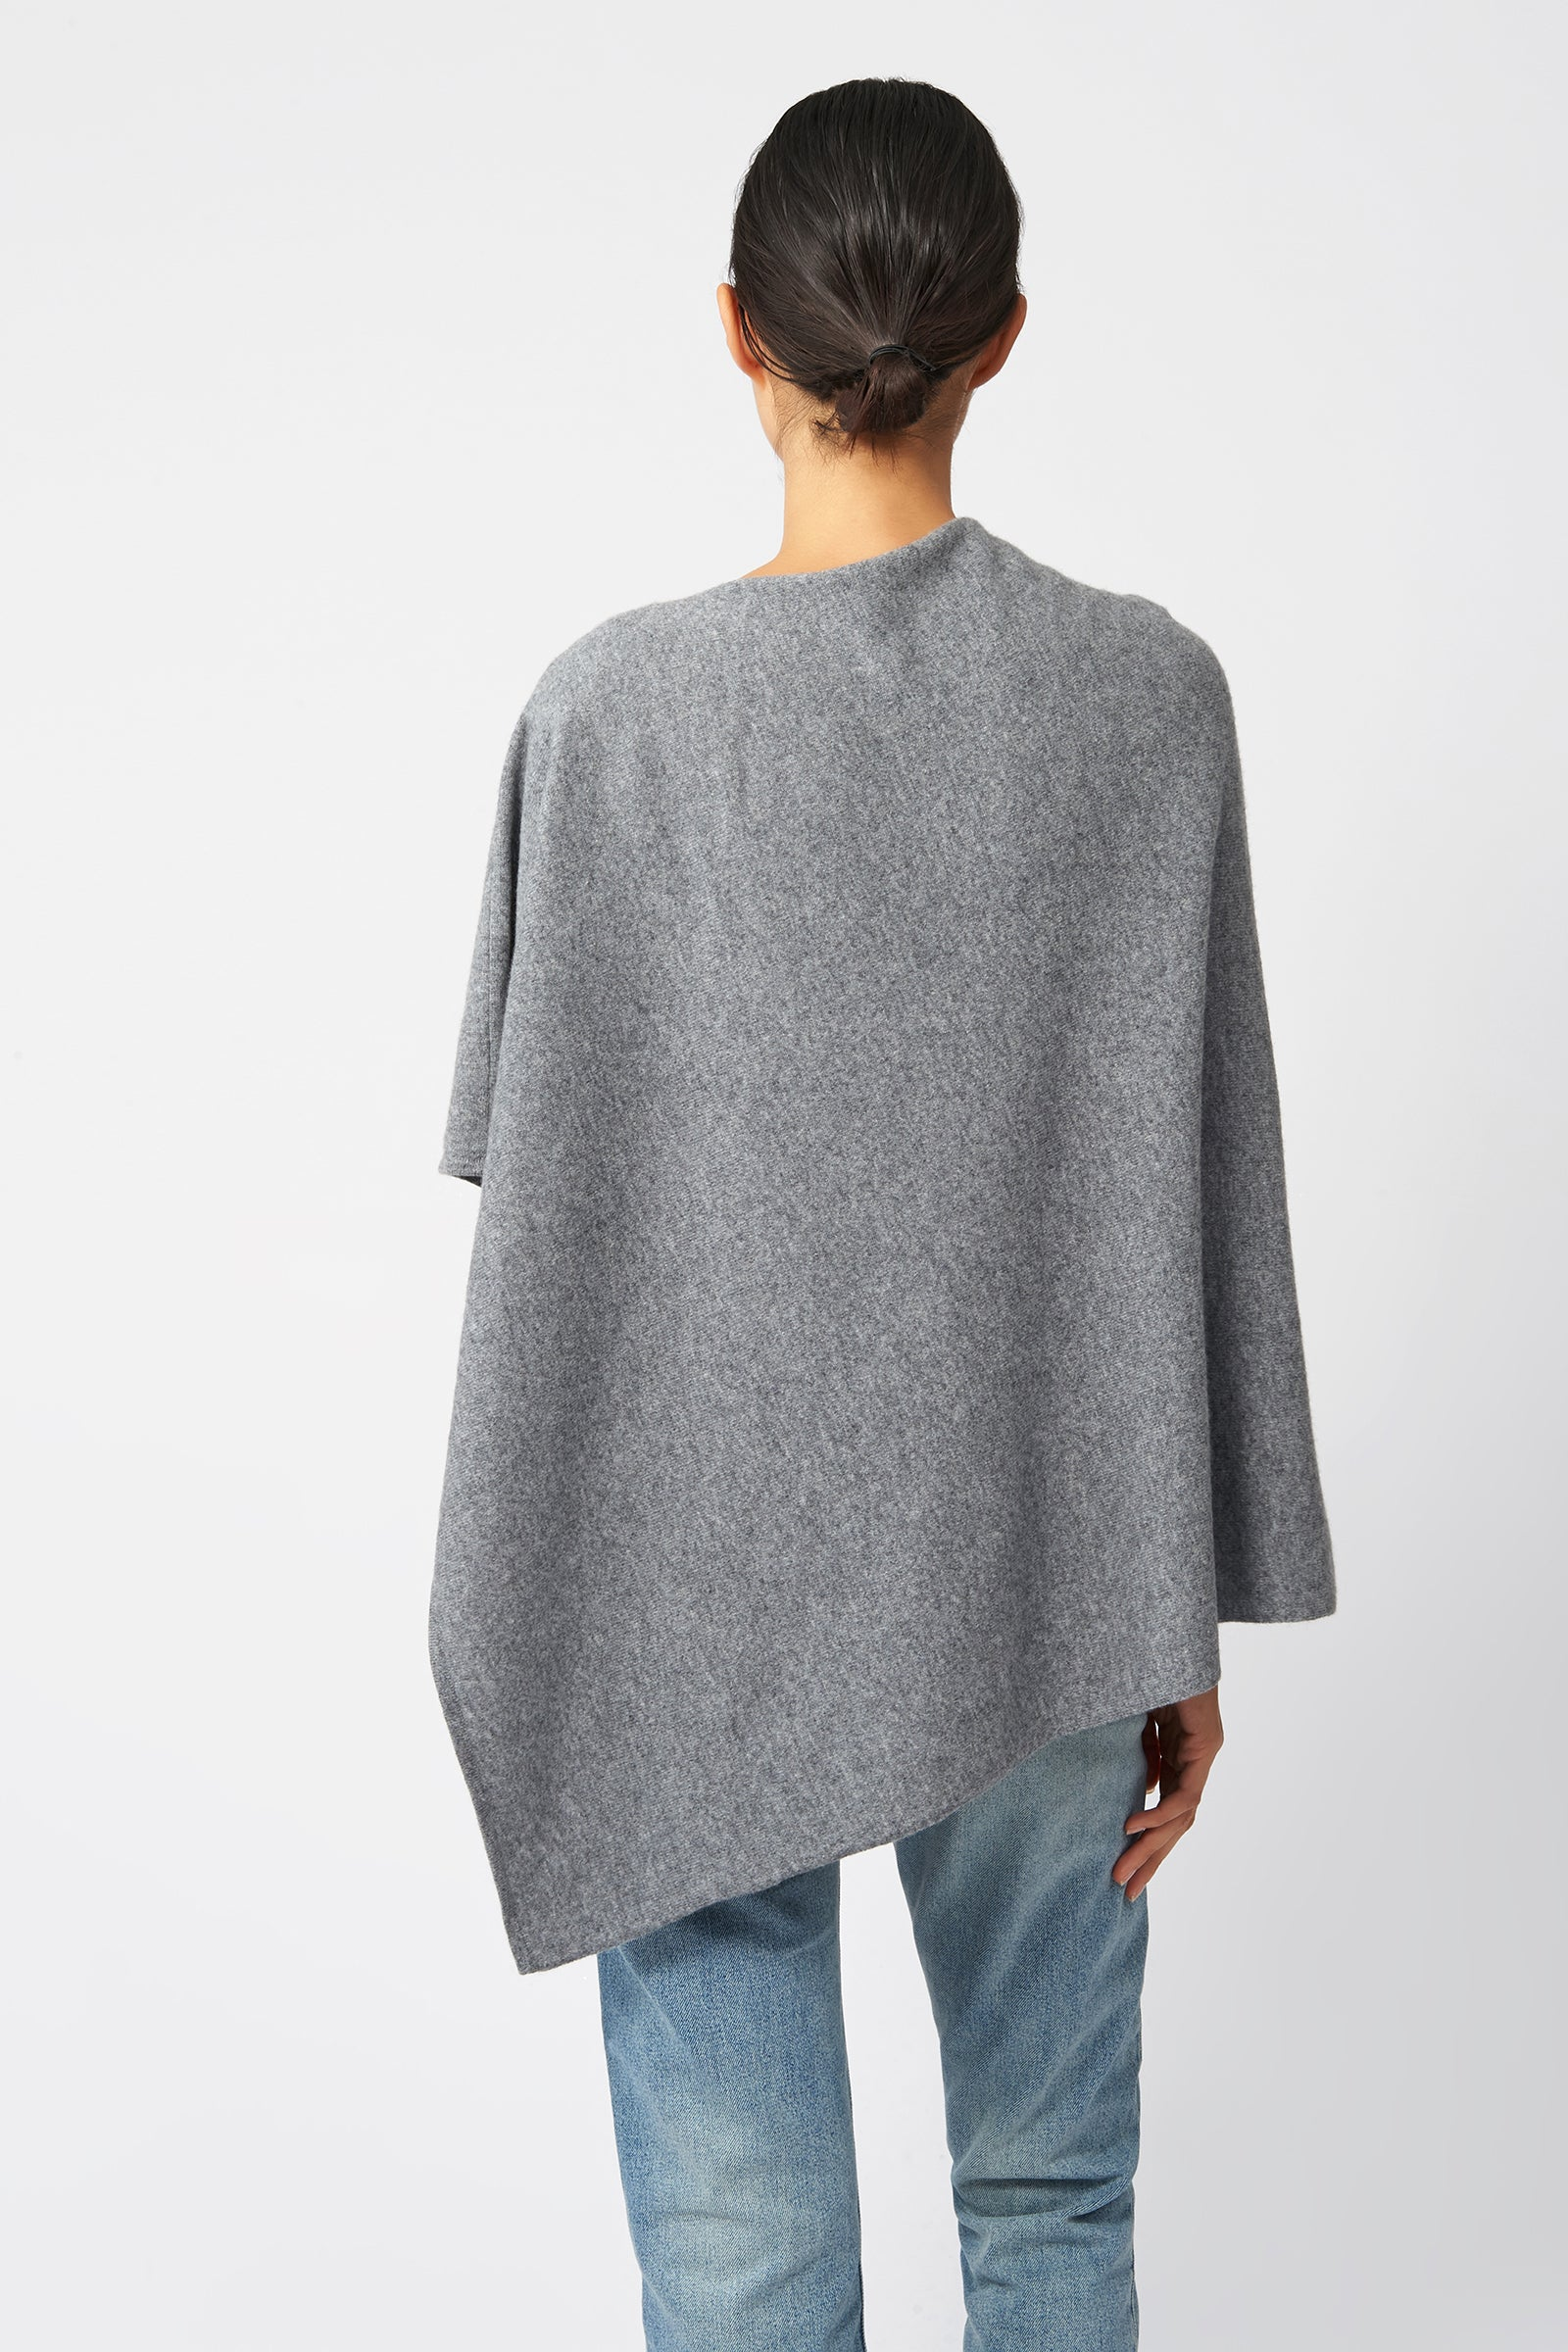 Kal Rieman Cashmere Poncho in Grey Flannel on Model Front View